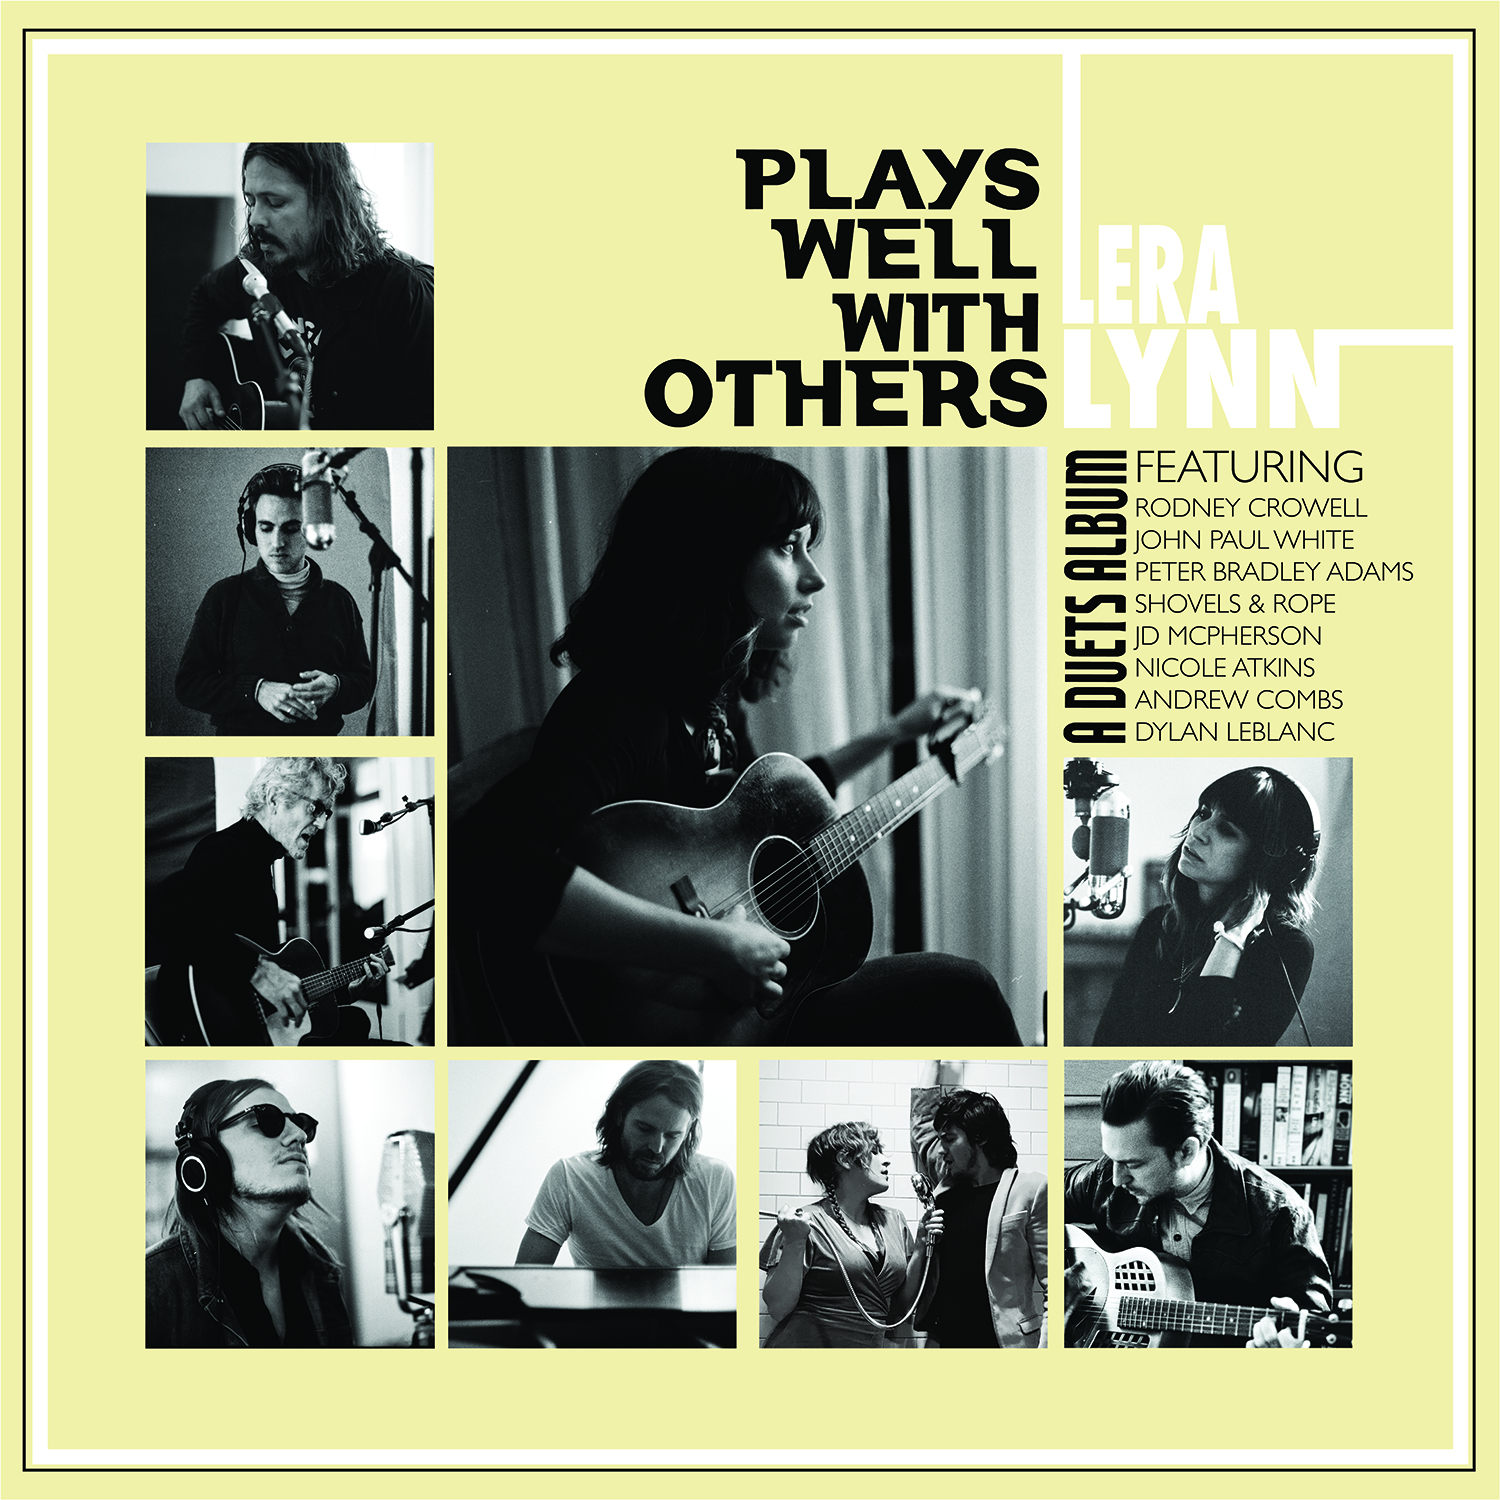 "We're excited to announce a new project from  Lera Lynn . It's called ""Plays Well With Others"", and it's a duets record featuring  John Paul White ,  Dylan LeBlanc ,  Nicole Atkins ,  Shovels and Rope ,  Peter Bradley Adams ,  Rodney Crowell (Official) ,  JD McPherson  and  Andrew Combs .  ""Plays Well With Others"" will release on CD and digital platforms on June 22, and a vinyl LP release will follow on July 27th.  Pre-order yours today:   smarturl.it/LeraLynnPWWO"